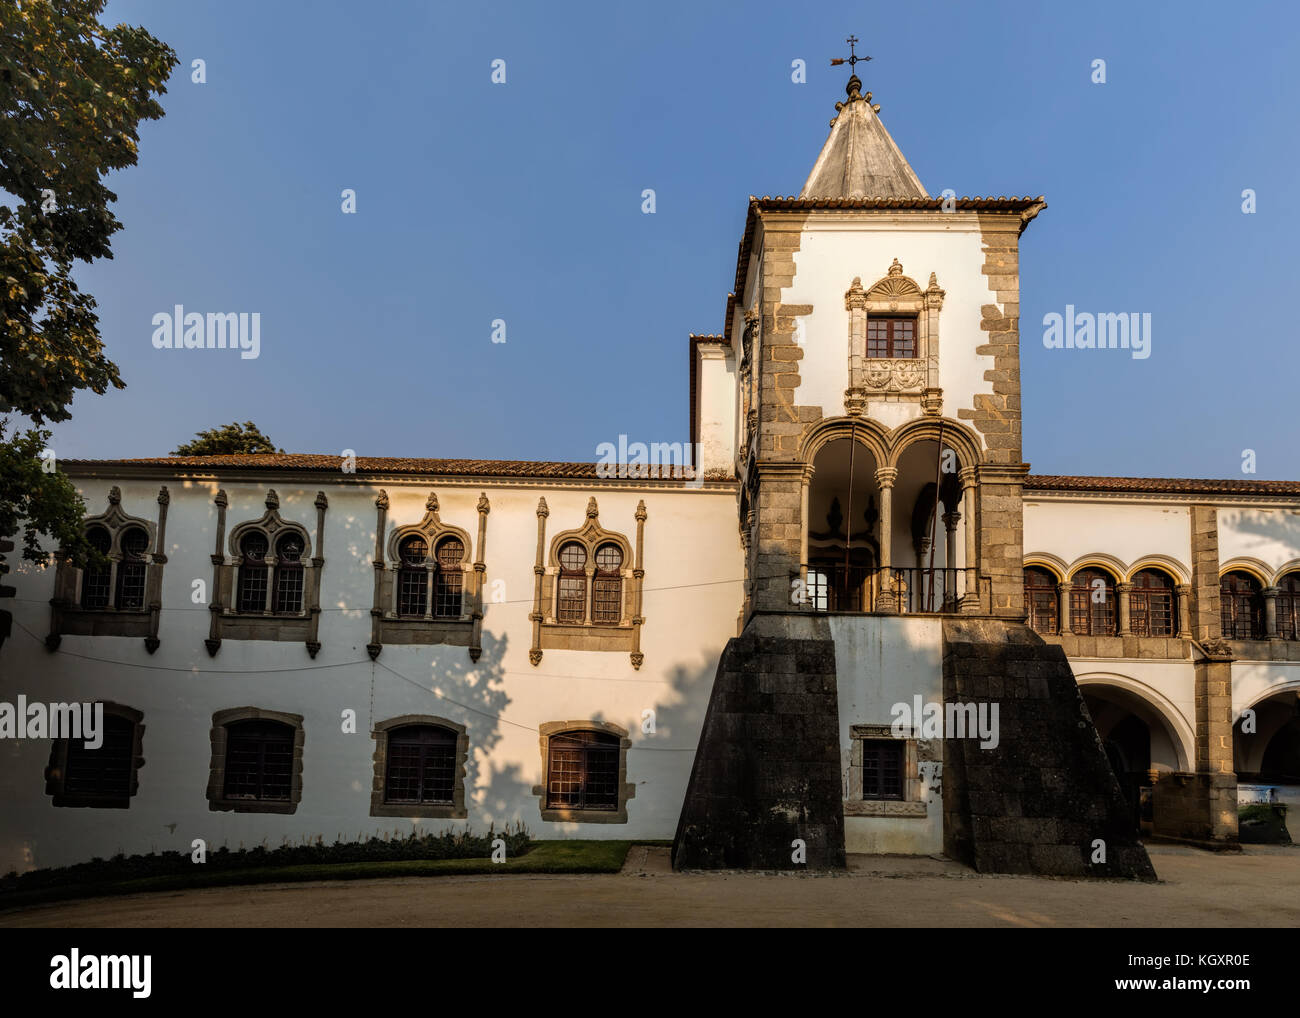 The Royal Palace of Evora, a former royal residence of the Kings of Portugal since the 14th century, one of the - Stock Image